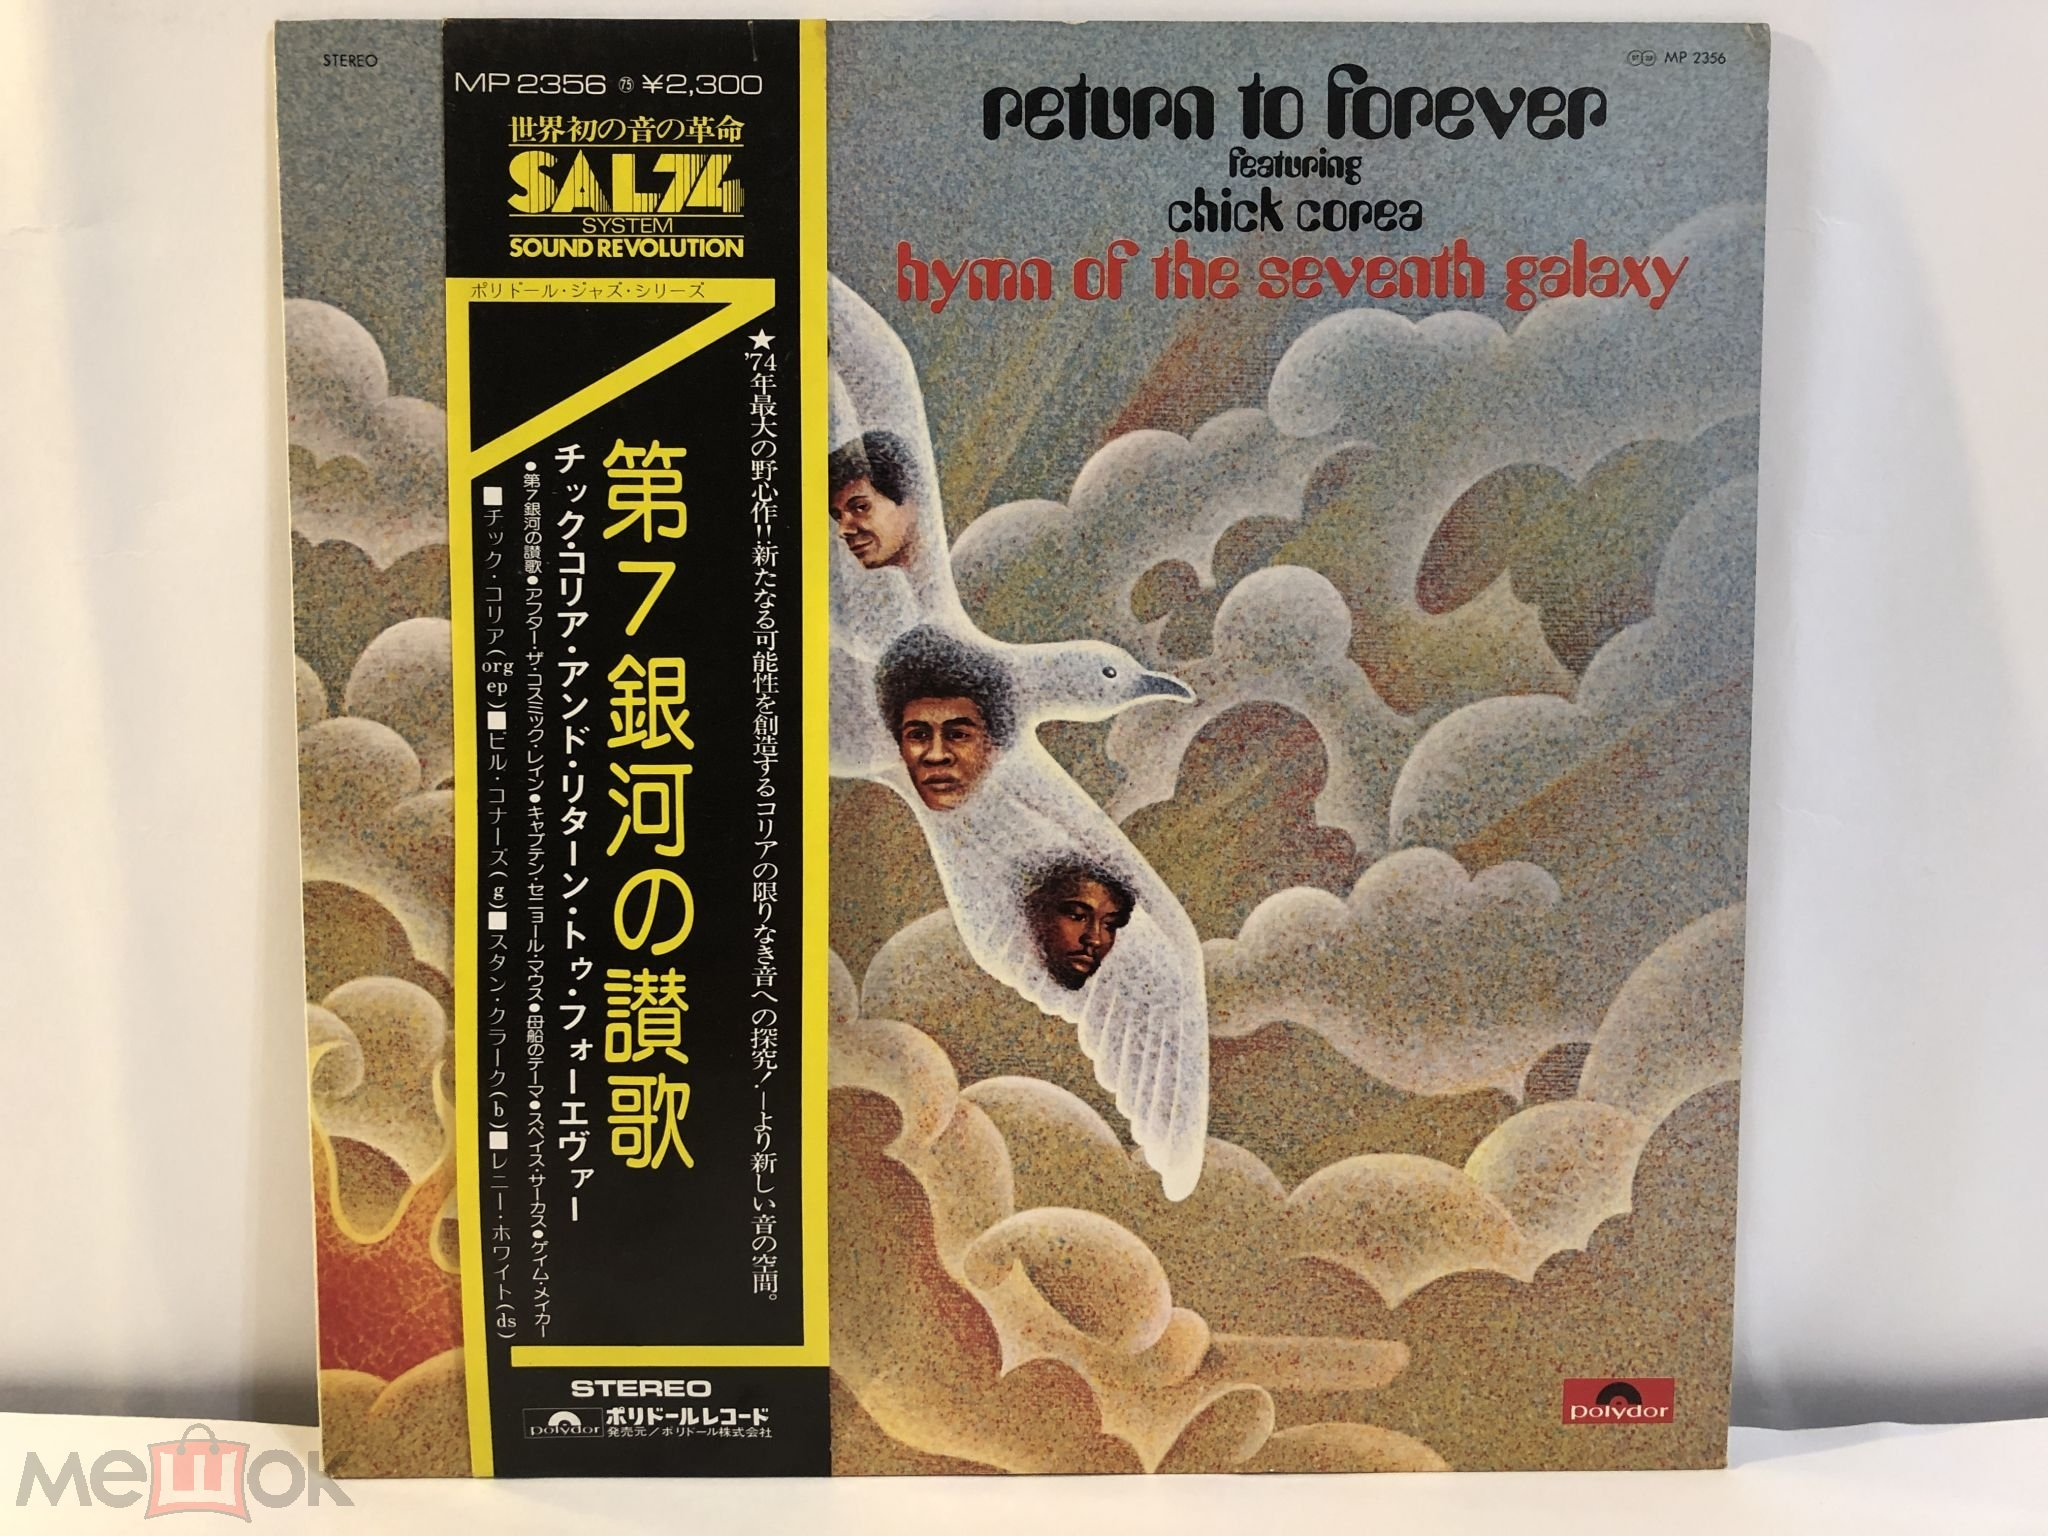 LP RETURN TO FOREVER & CHICK COREA - Hymn Of The Seventh Galaxy (1973) JAPAN (MP 2356) OBI EX+/EX+